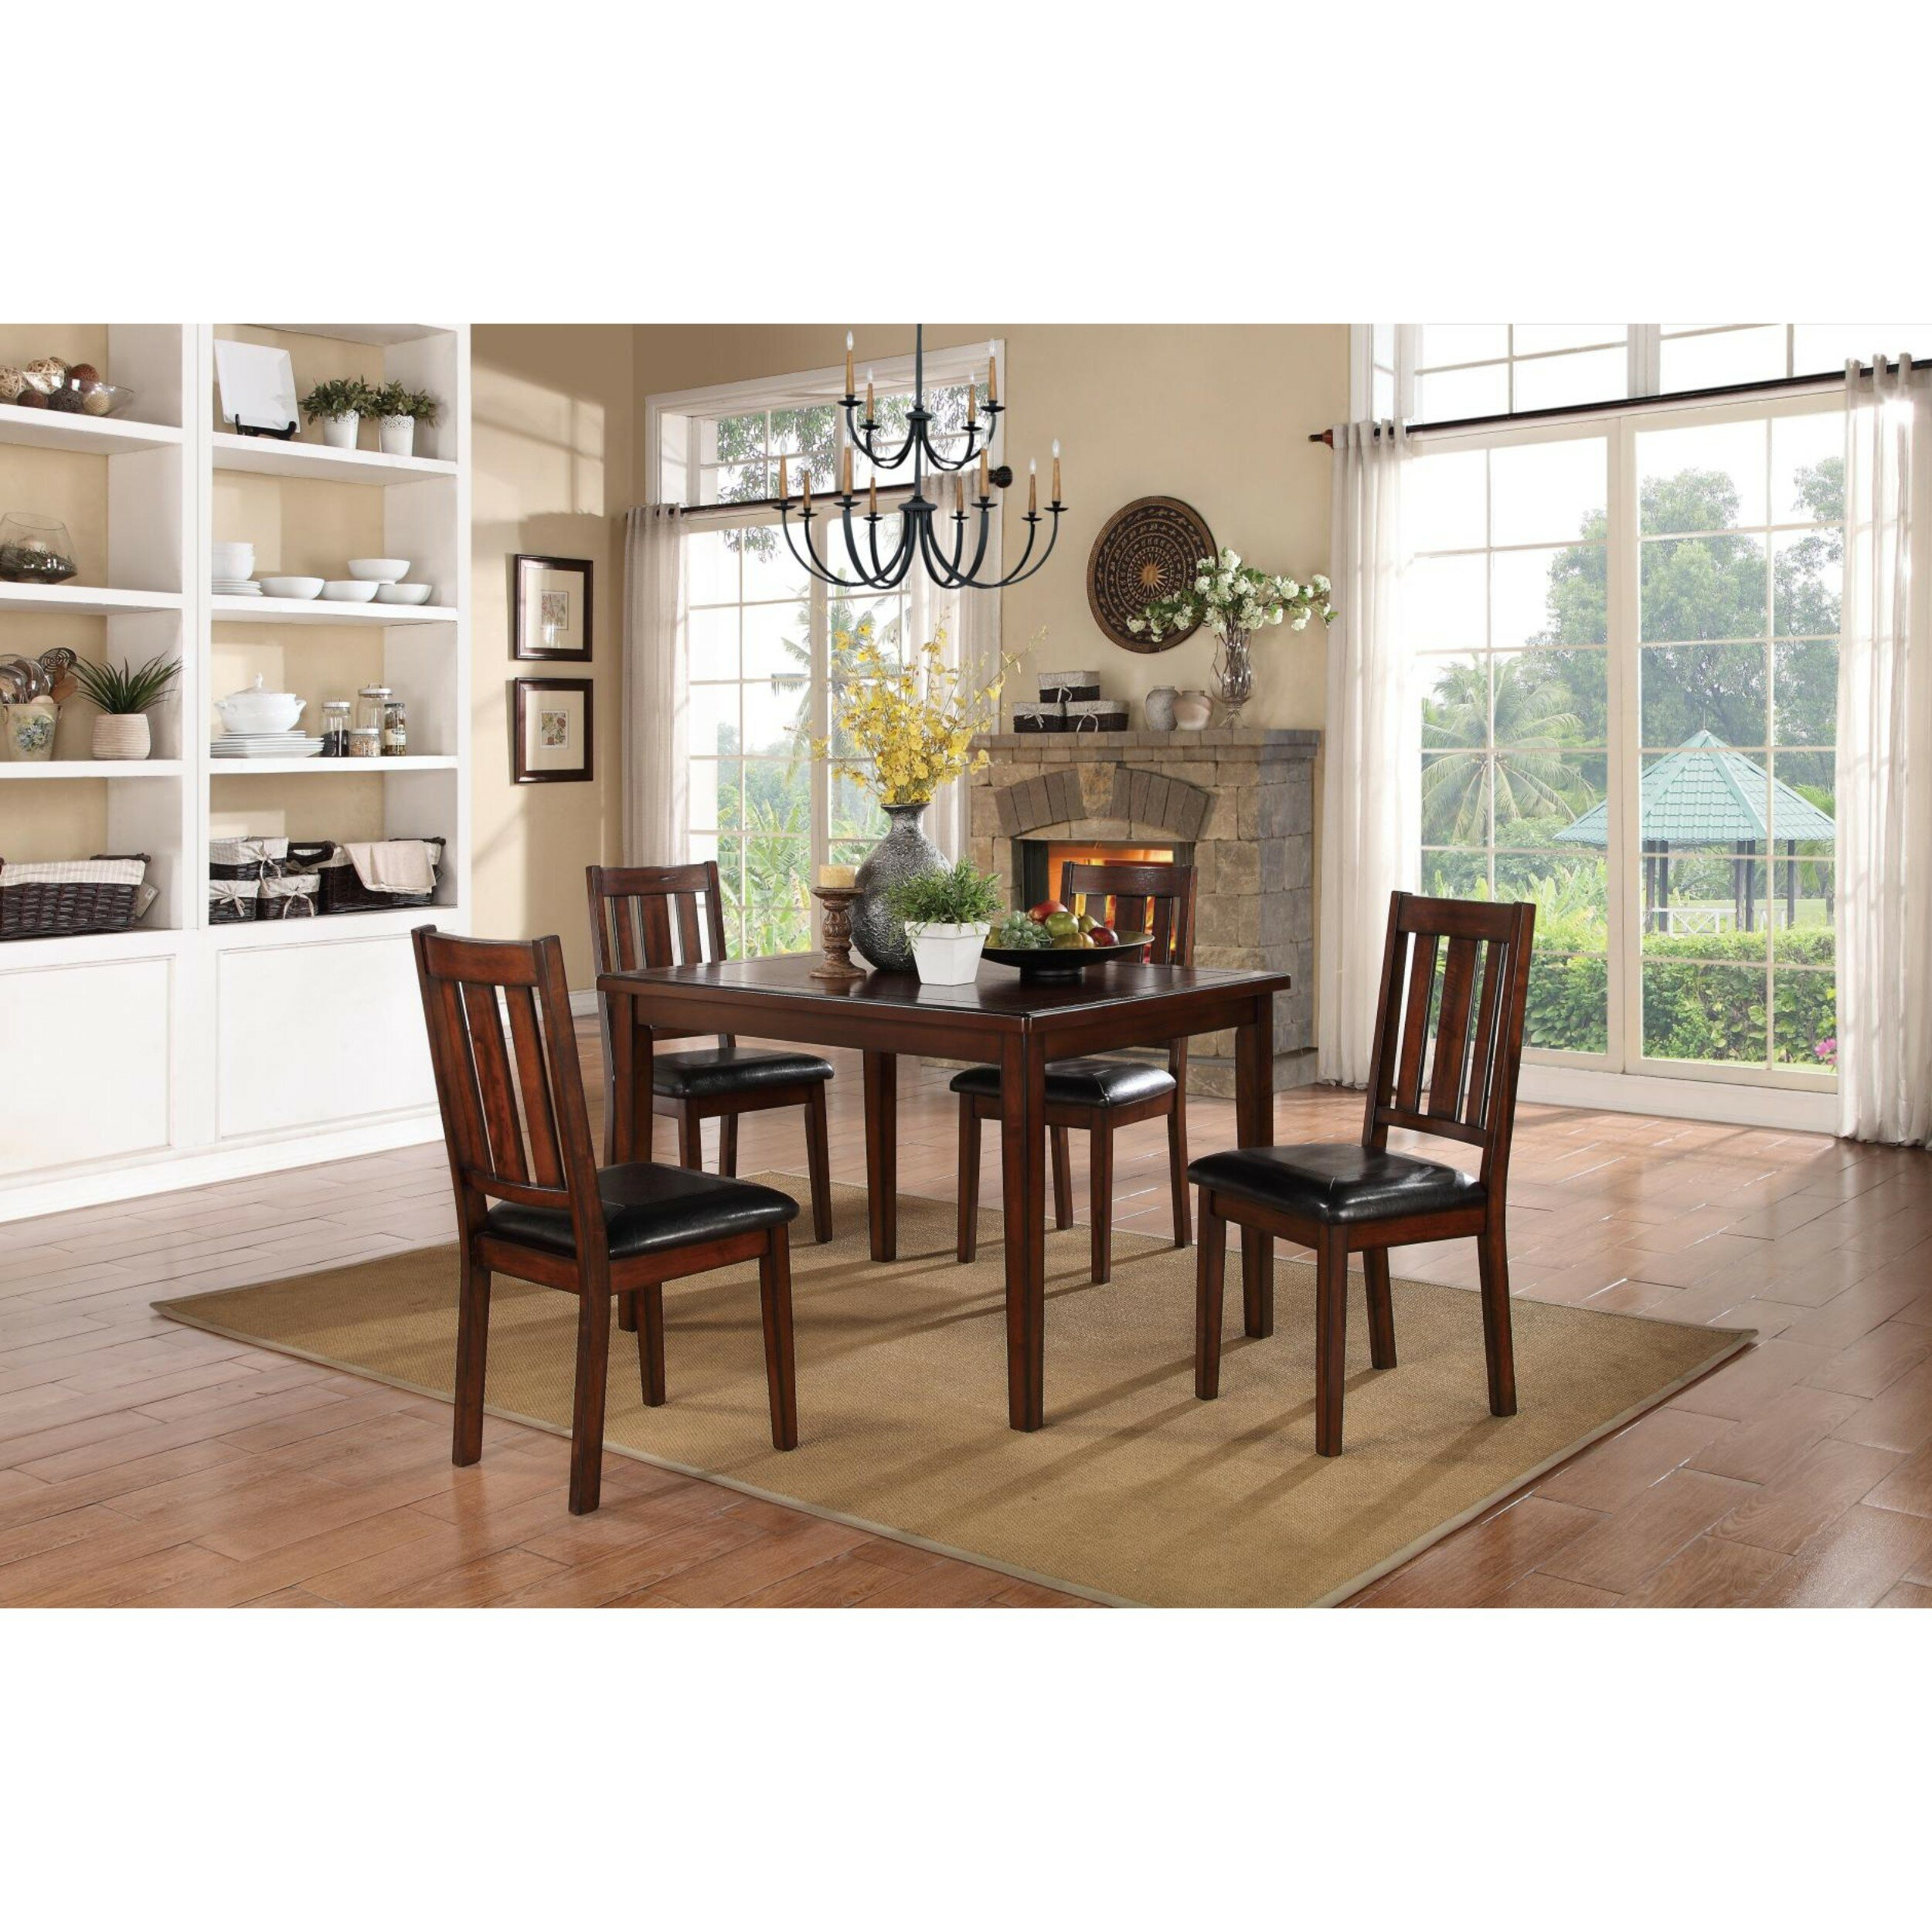 Soderquist Dinette 5 Piece Solid Wood Dining Set Regarding Best And Newest Goodman 5 Piece Solid Wood Dining Sets (Set Of 5) (Image 18 of 20)